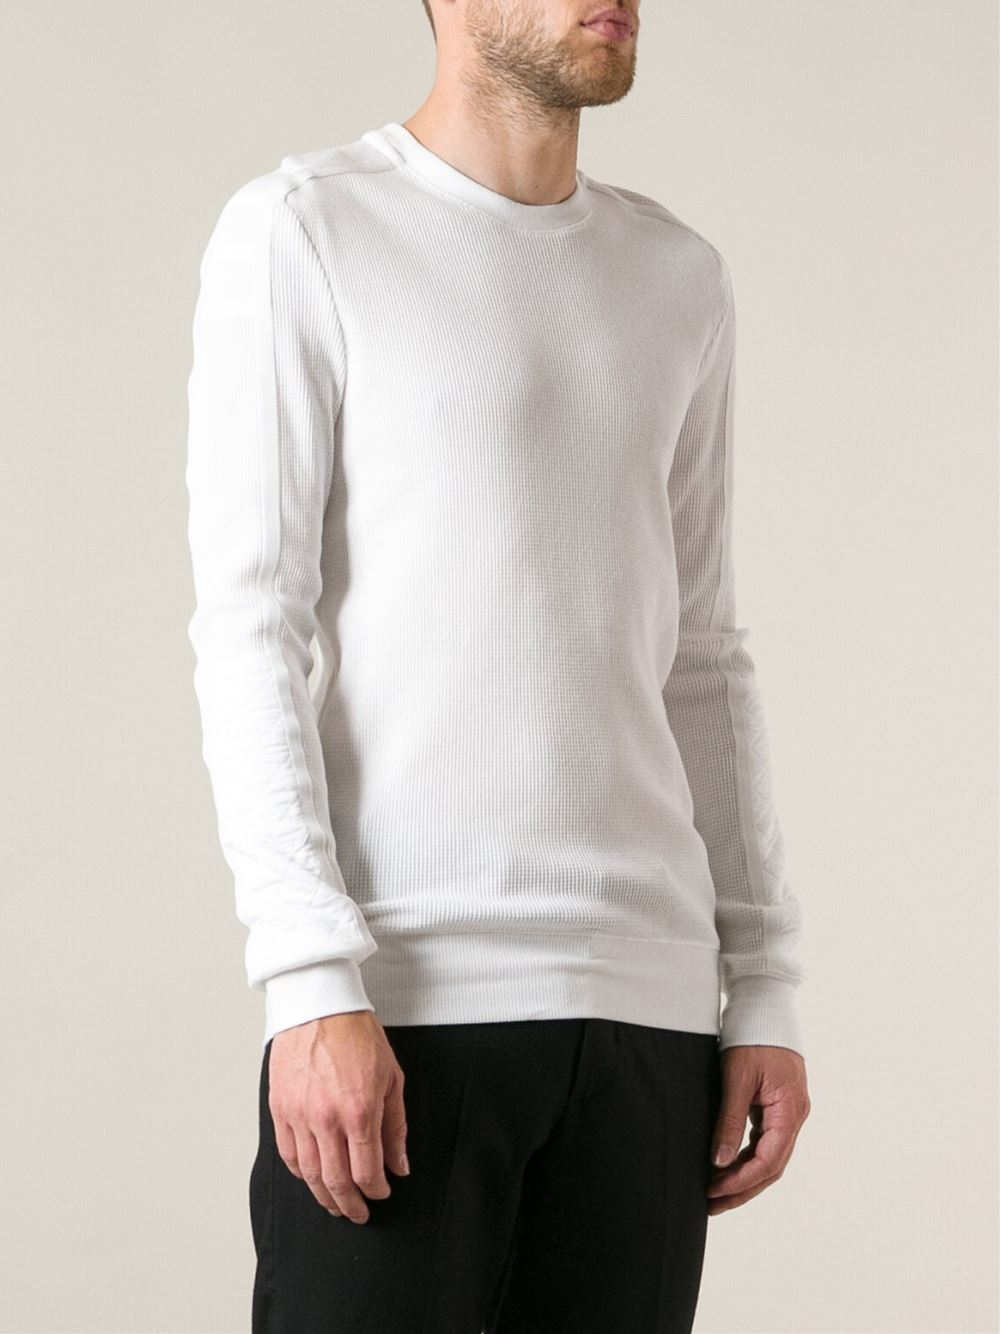 29f0f70d752e4b Lyst - Helmut Lang Waffle Weave Sweater in White for Men